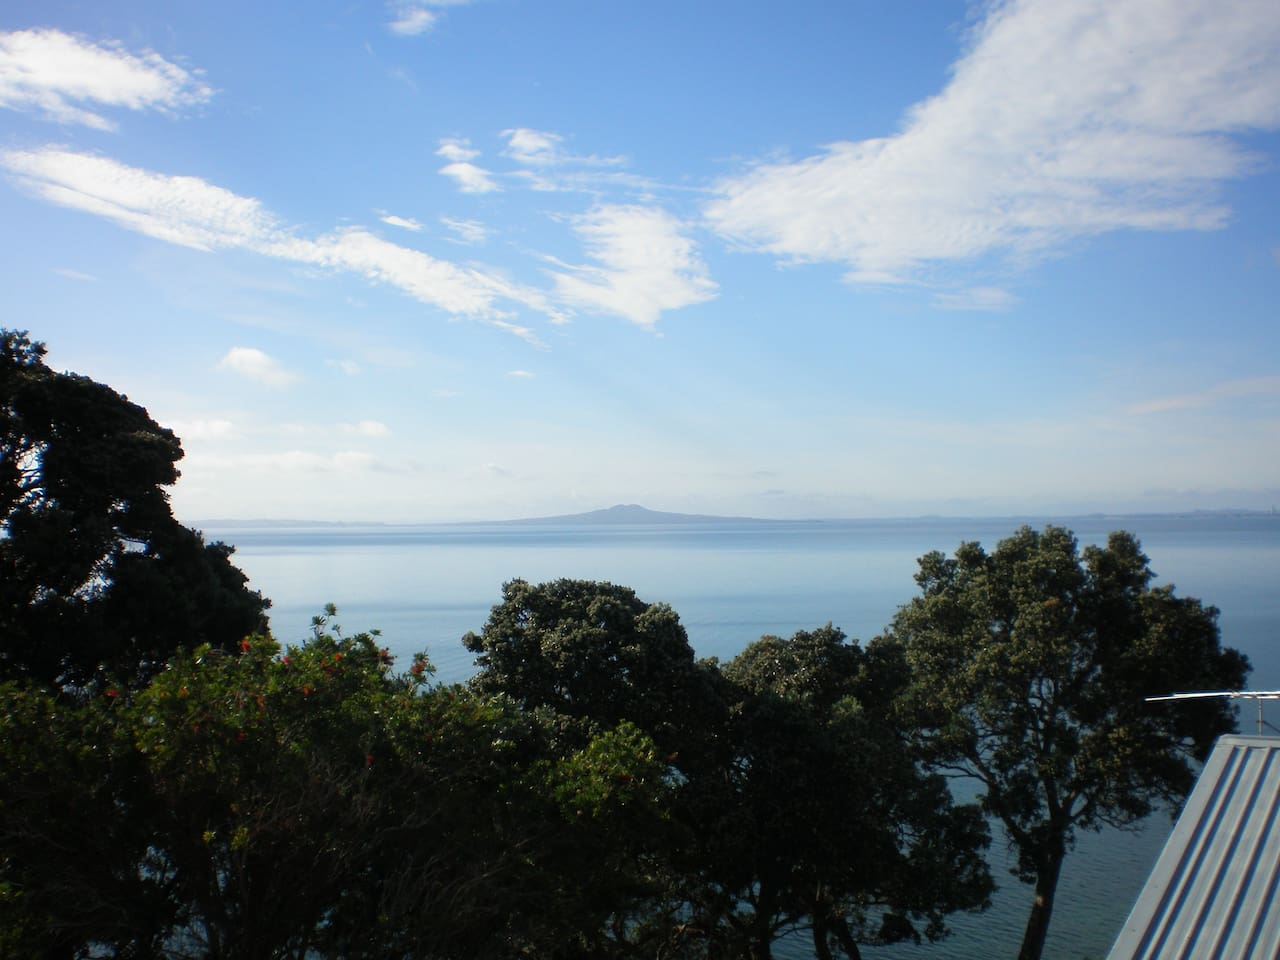 Rangitoto Island - view from the deck